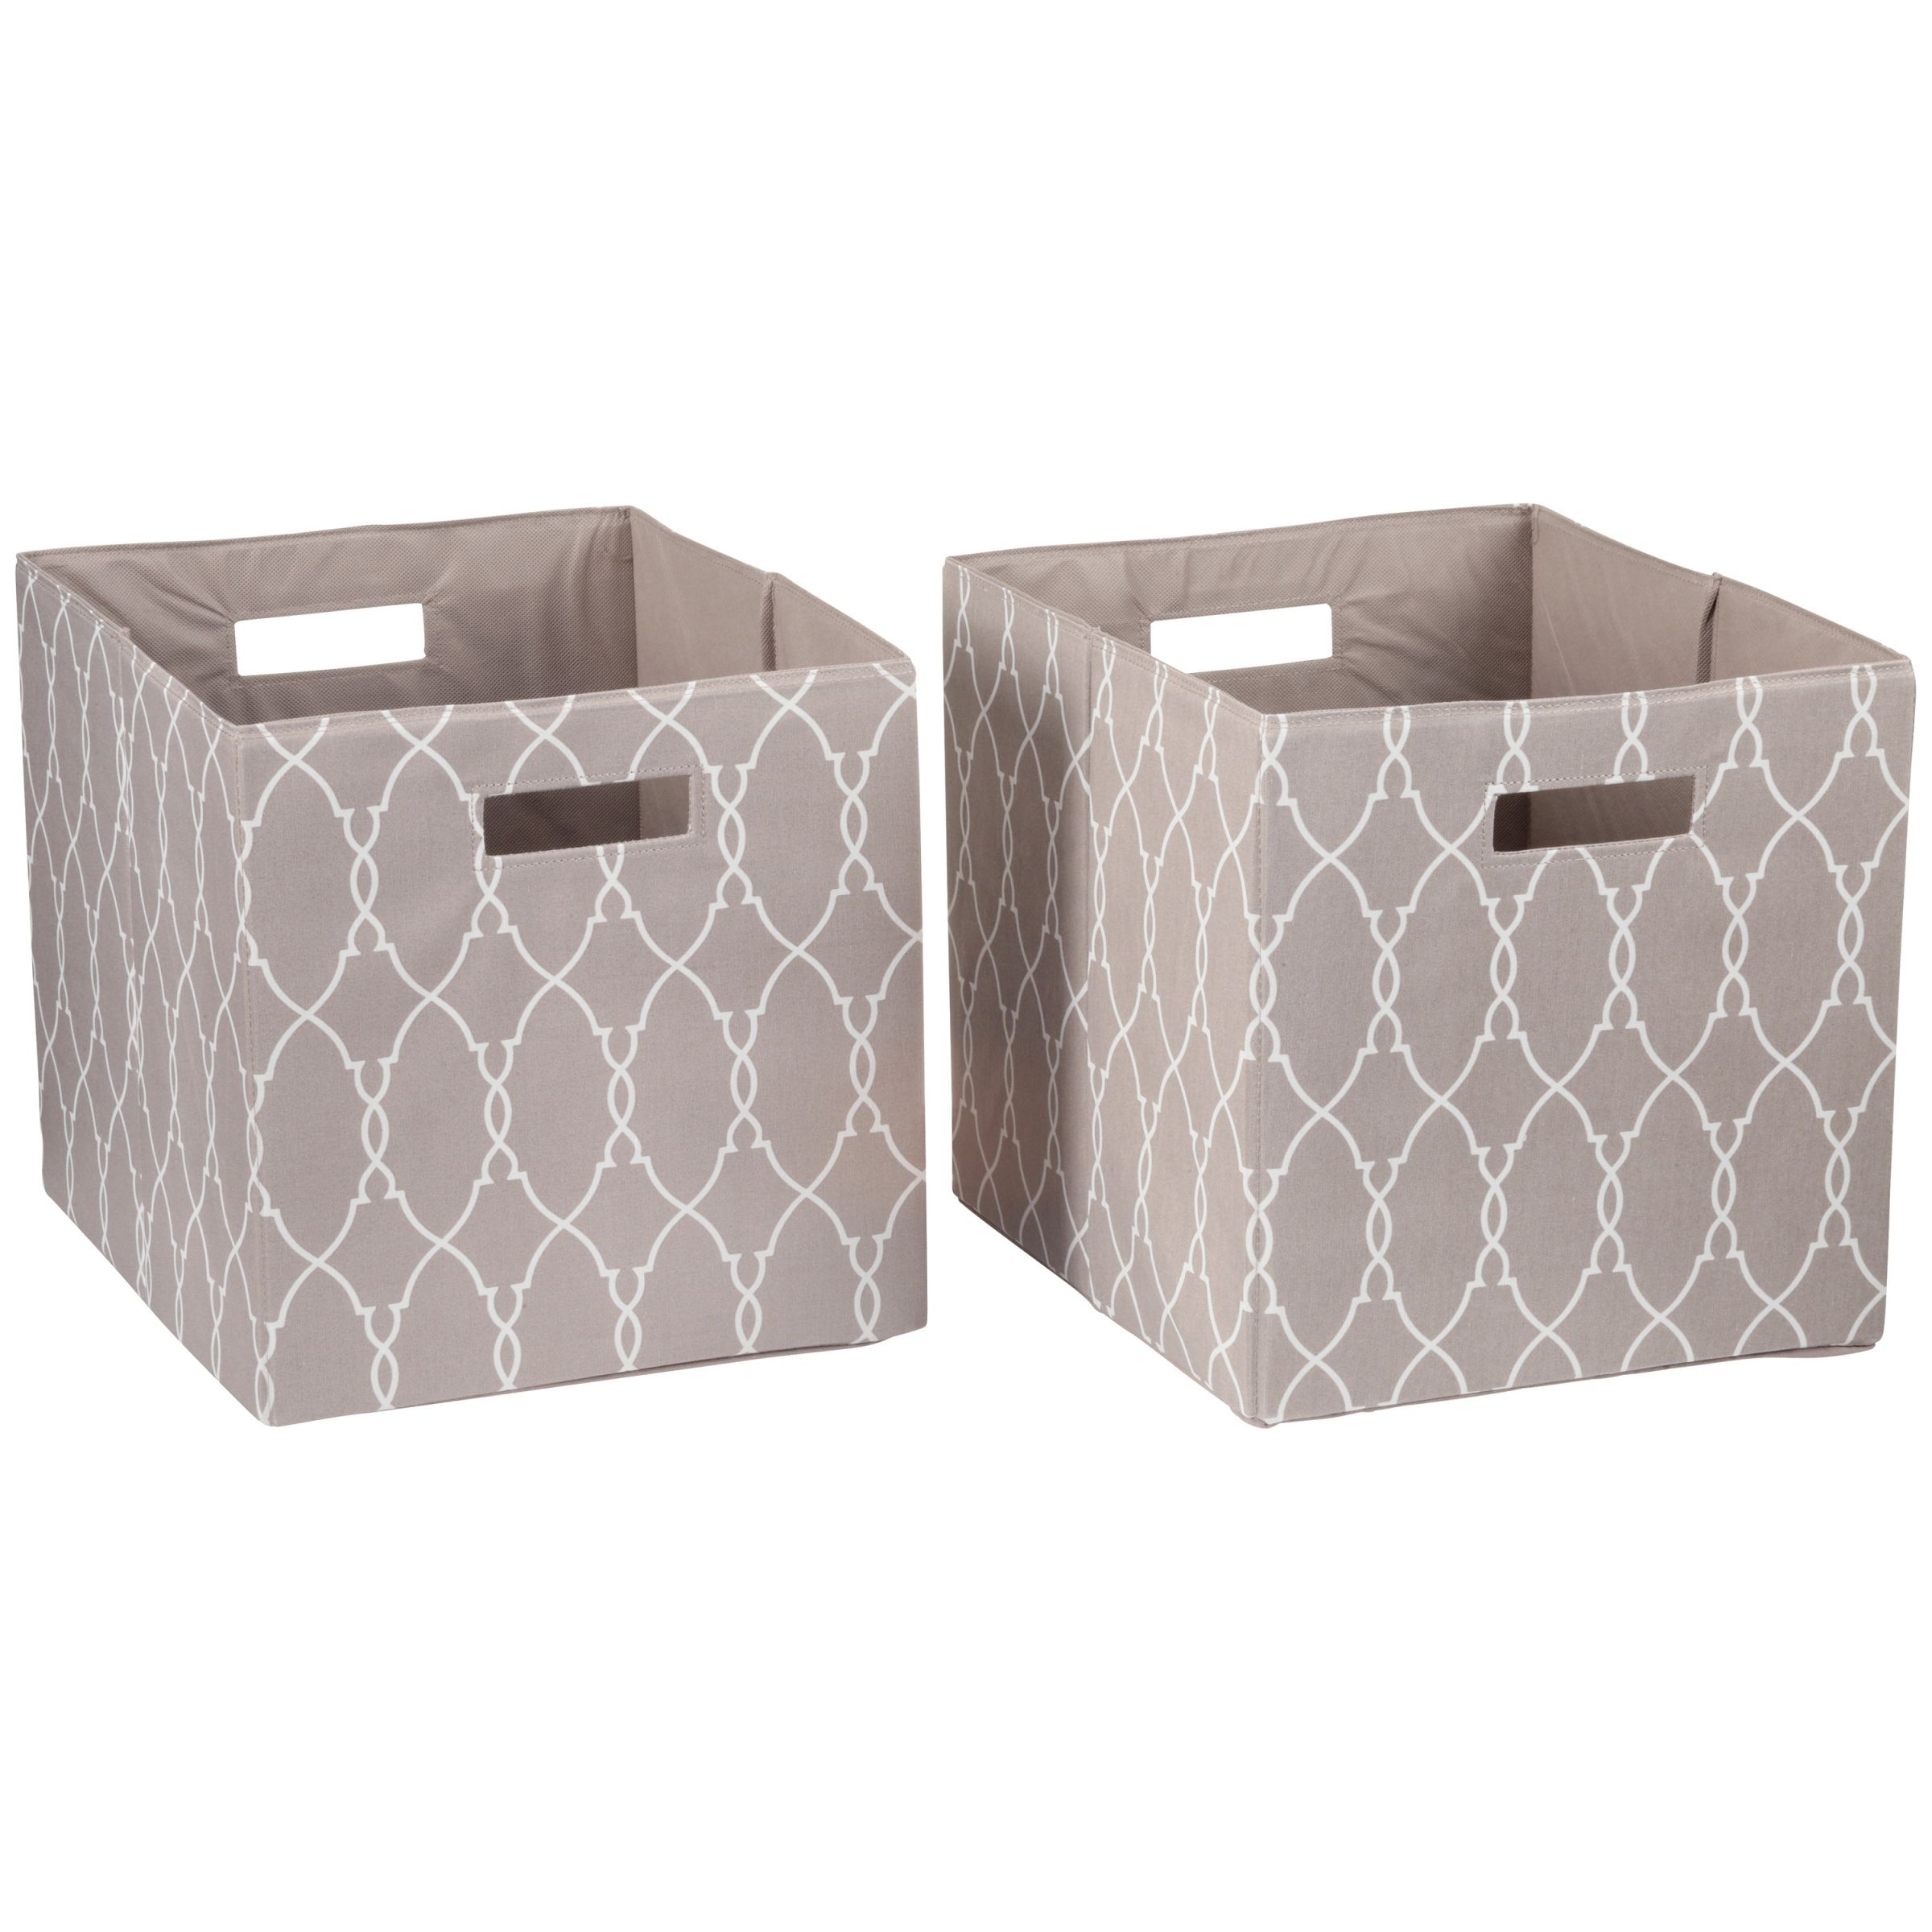 Pin By Linda Elliott On Current House Ideas Cube Storage Bins Fabric Storage Bins Cube Storage